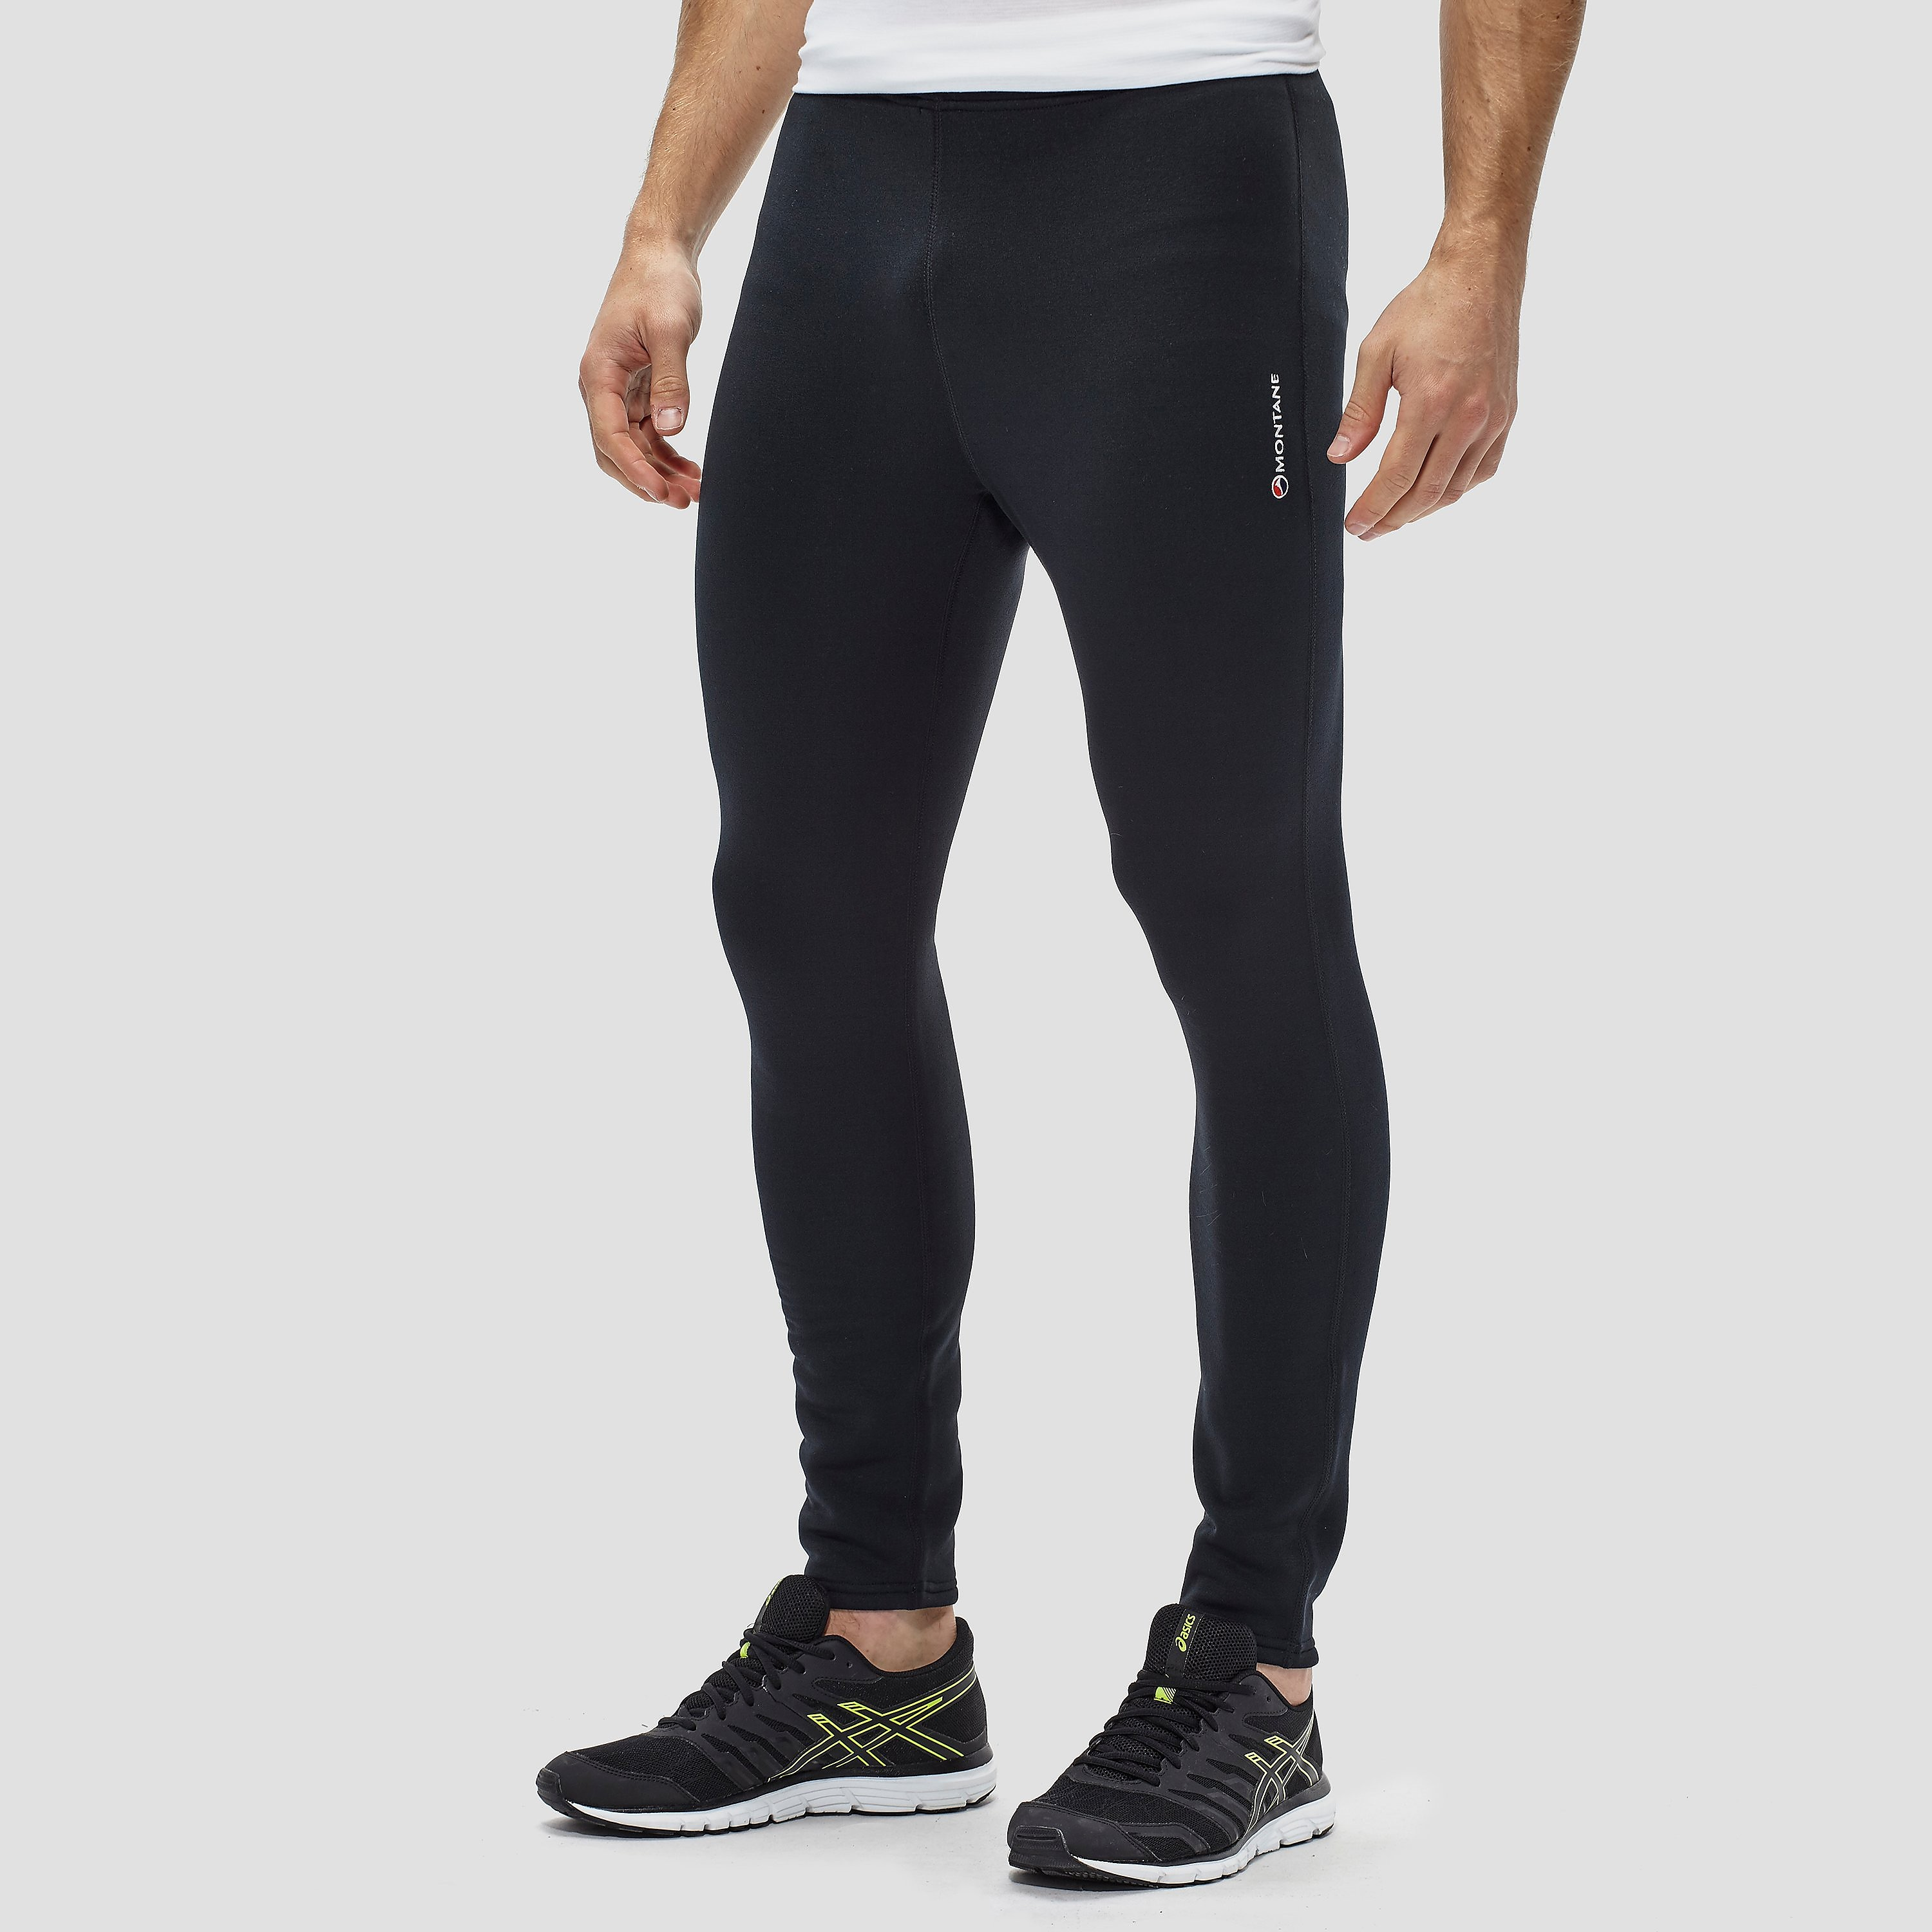 Montane POWER UP PRO PANTS